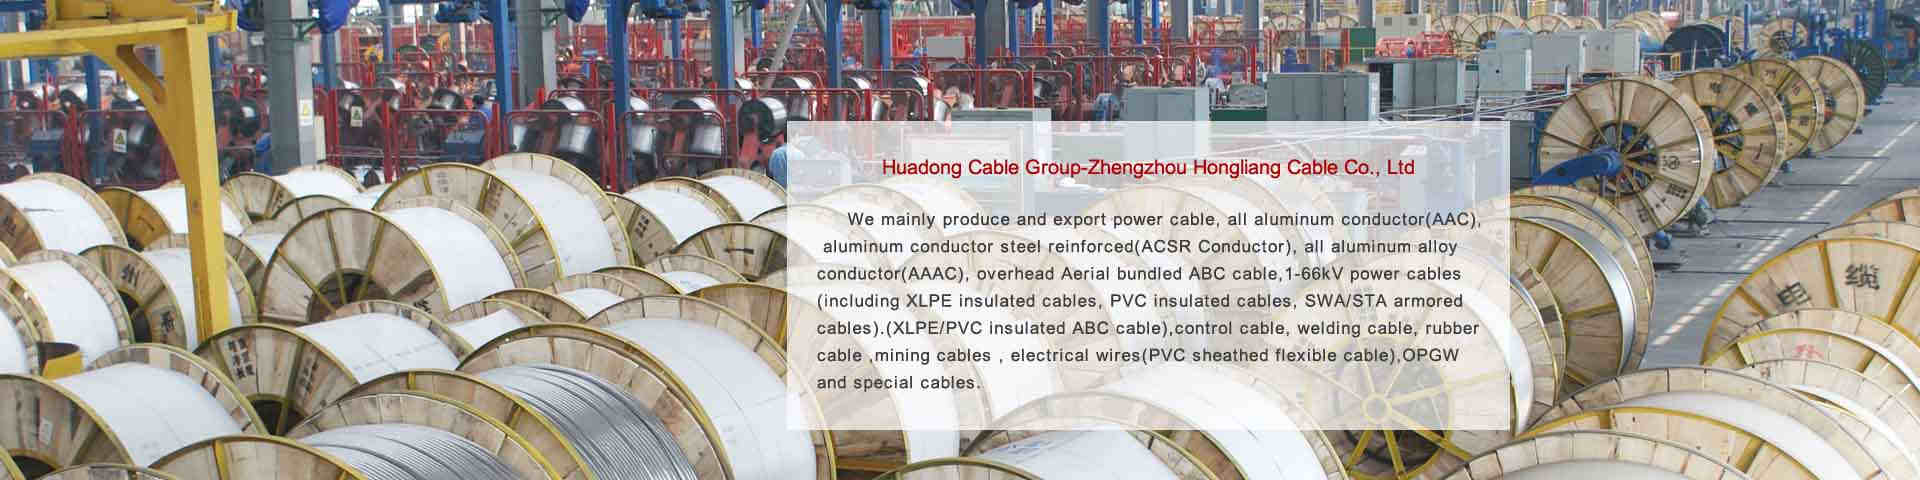 urd electrical manufacturer